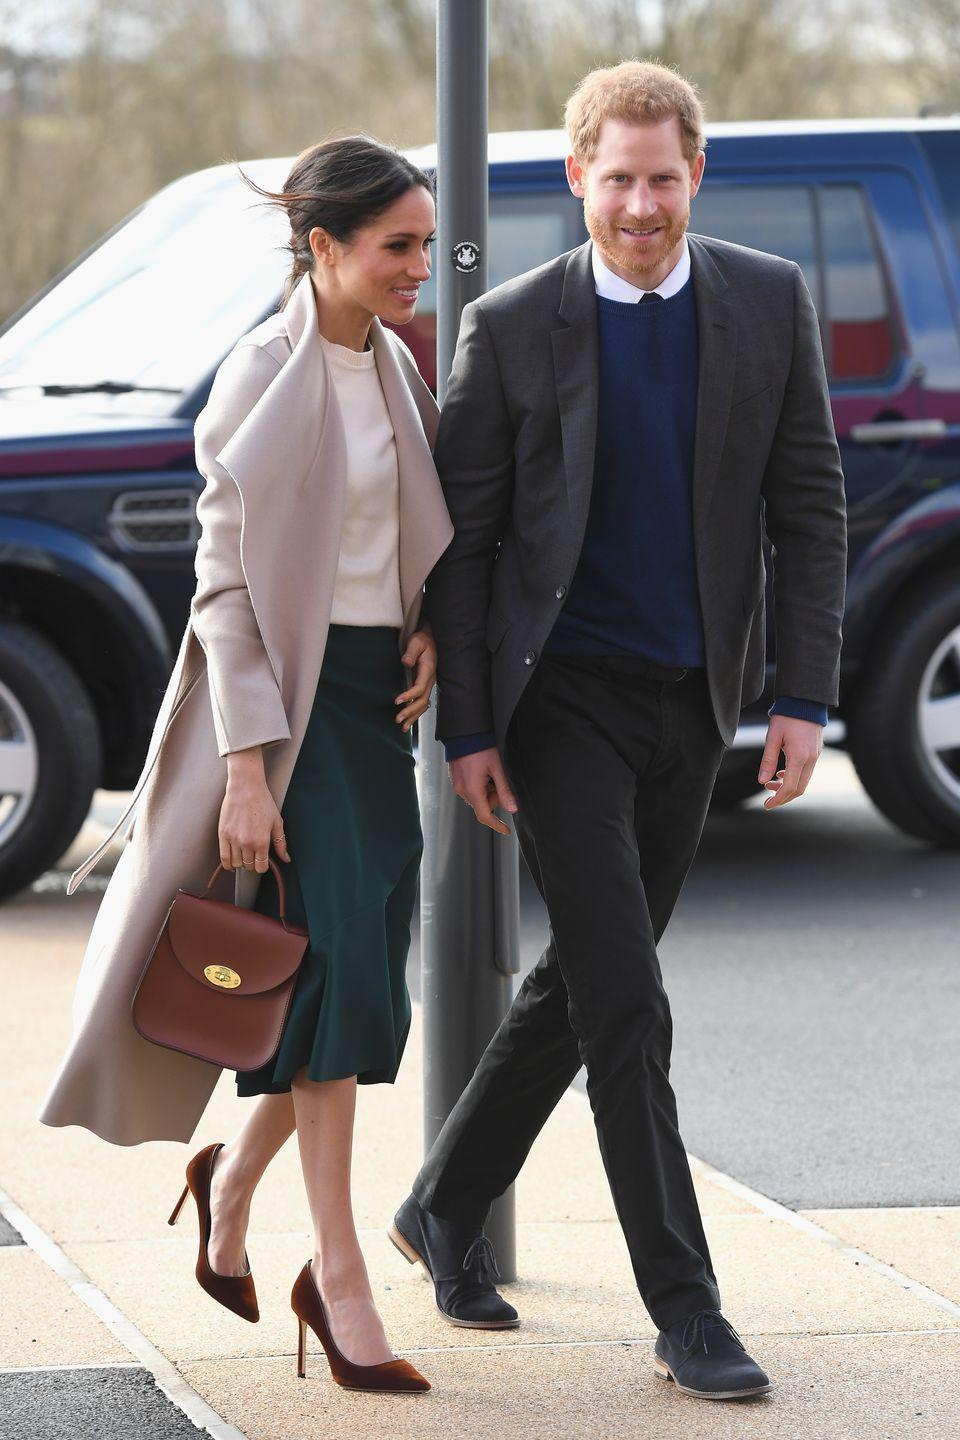 <p>For a surprise visit to Belfast, Markle chose a dusty pink coat over a white shirt and vibrant green skirt. She paired the look with a top-handled bag and maroon stilettos.</p>